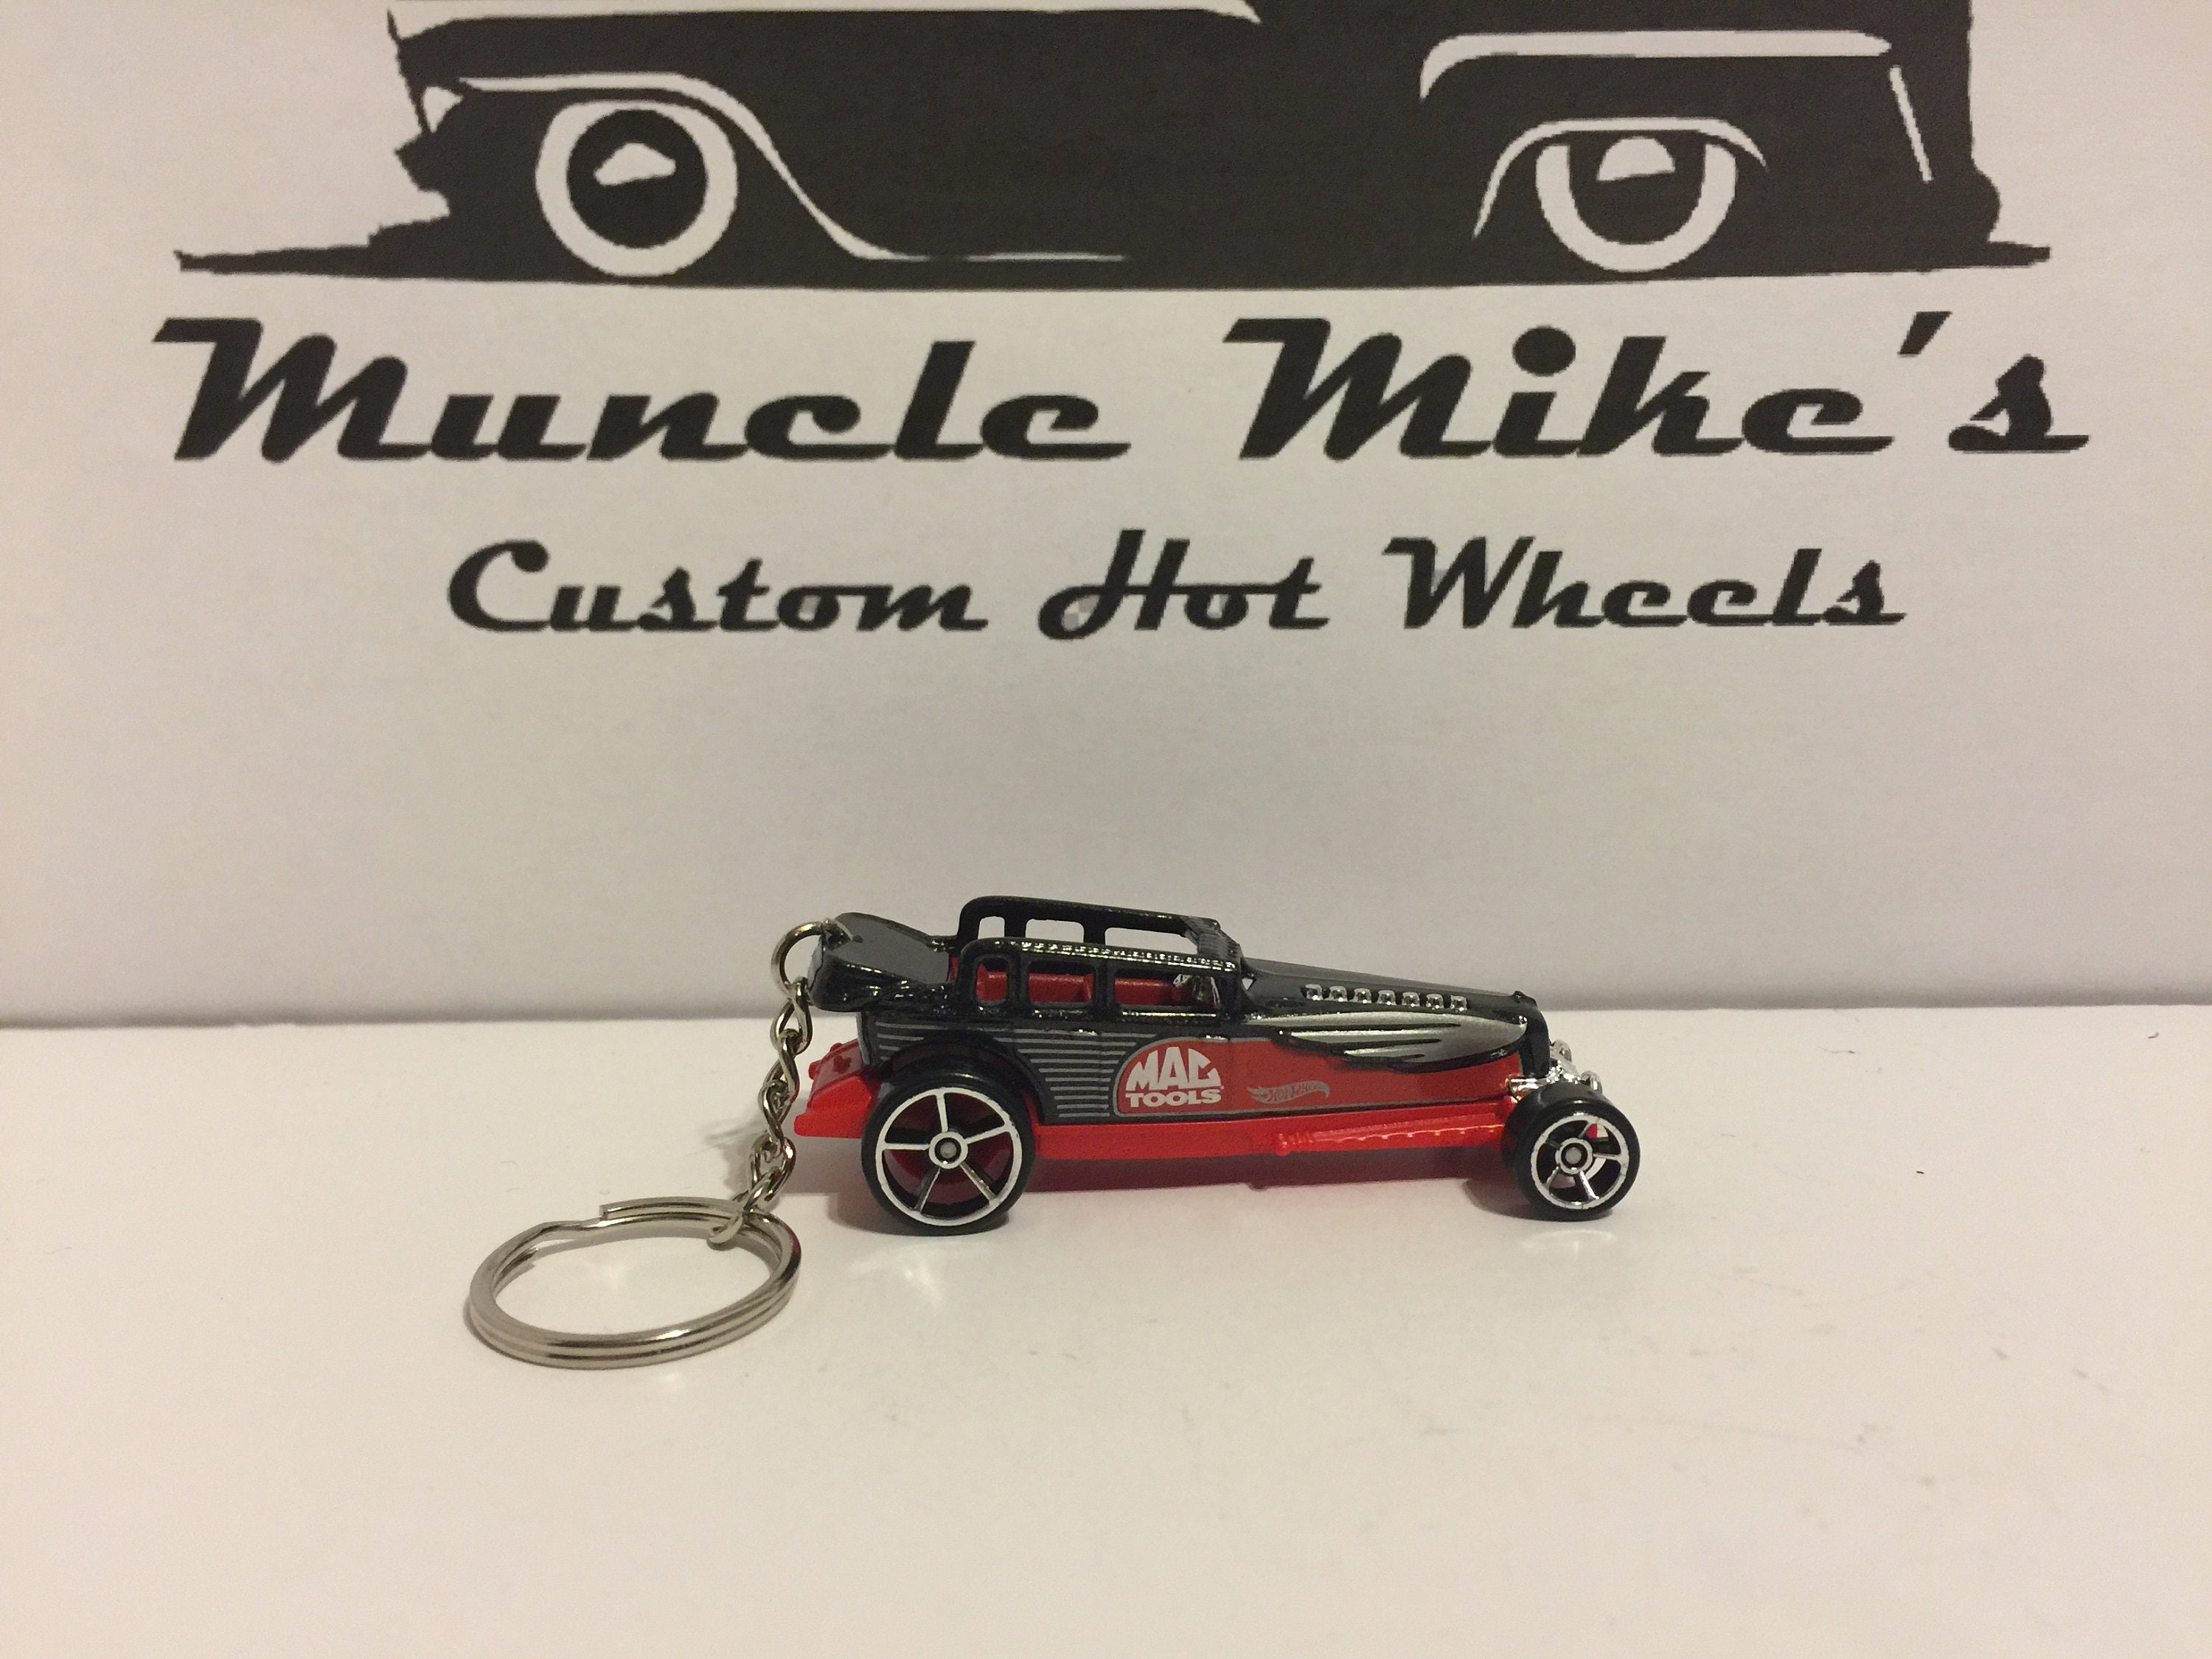 one-of-a-kind Custom Hot Wheels black and red Mac Tools Gadspeed key chain keychain